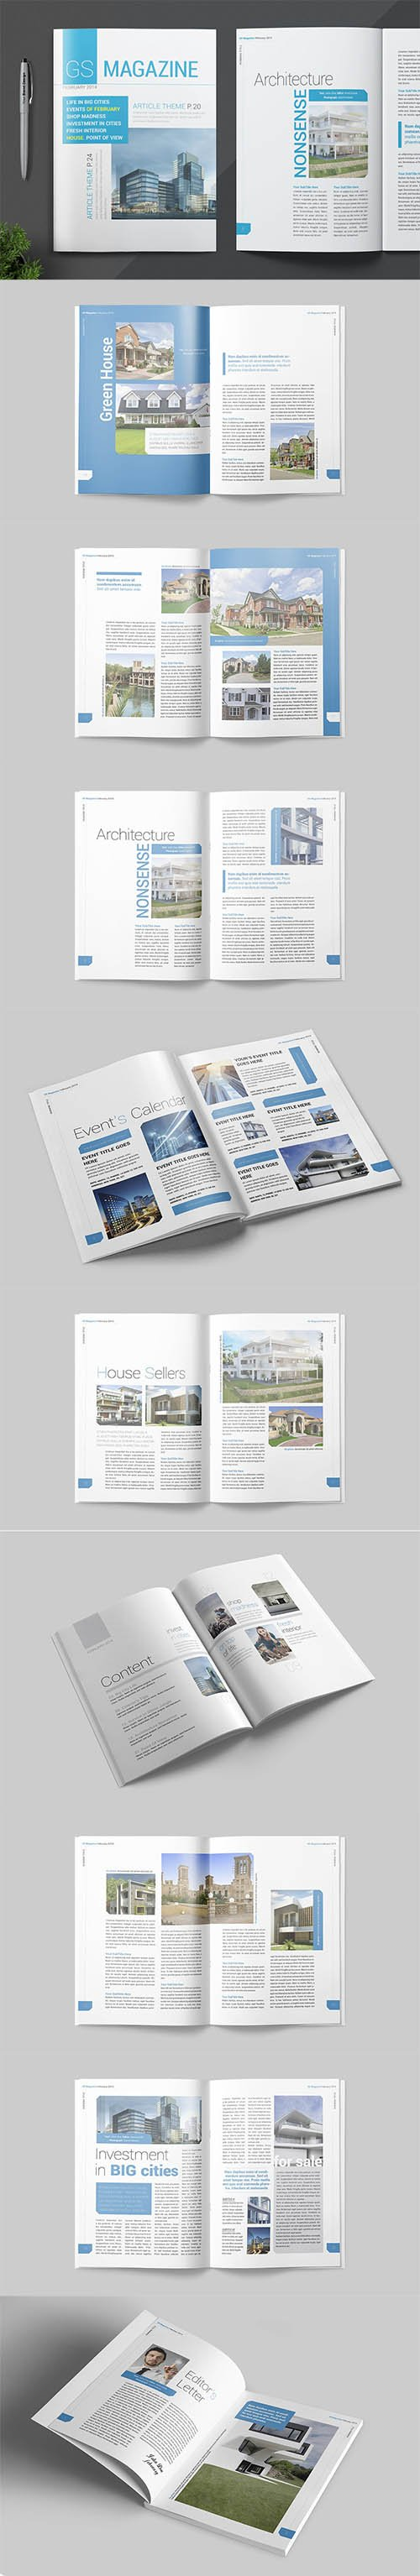 Magazine Template INDD